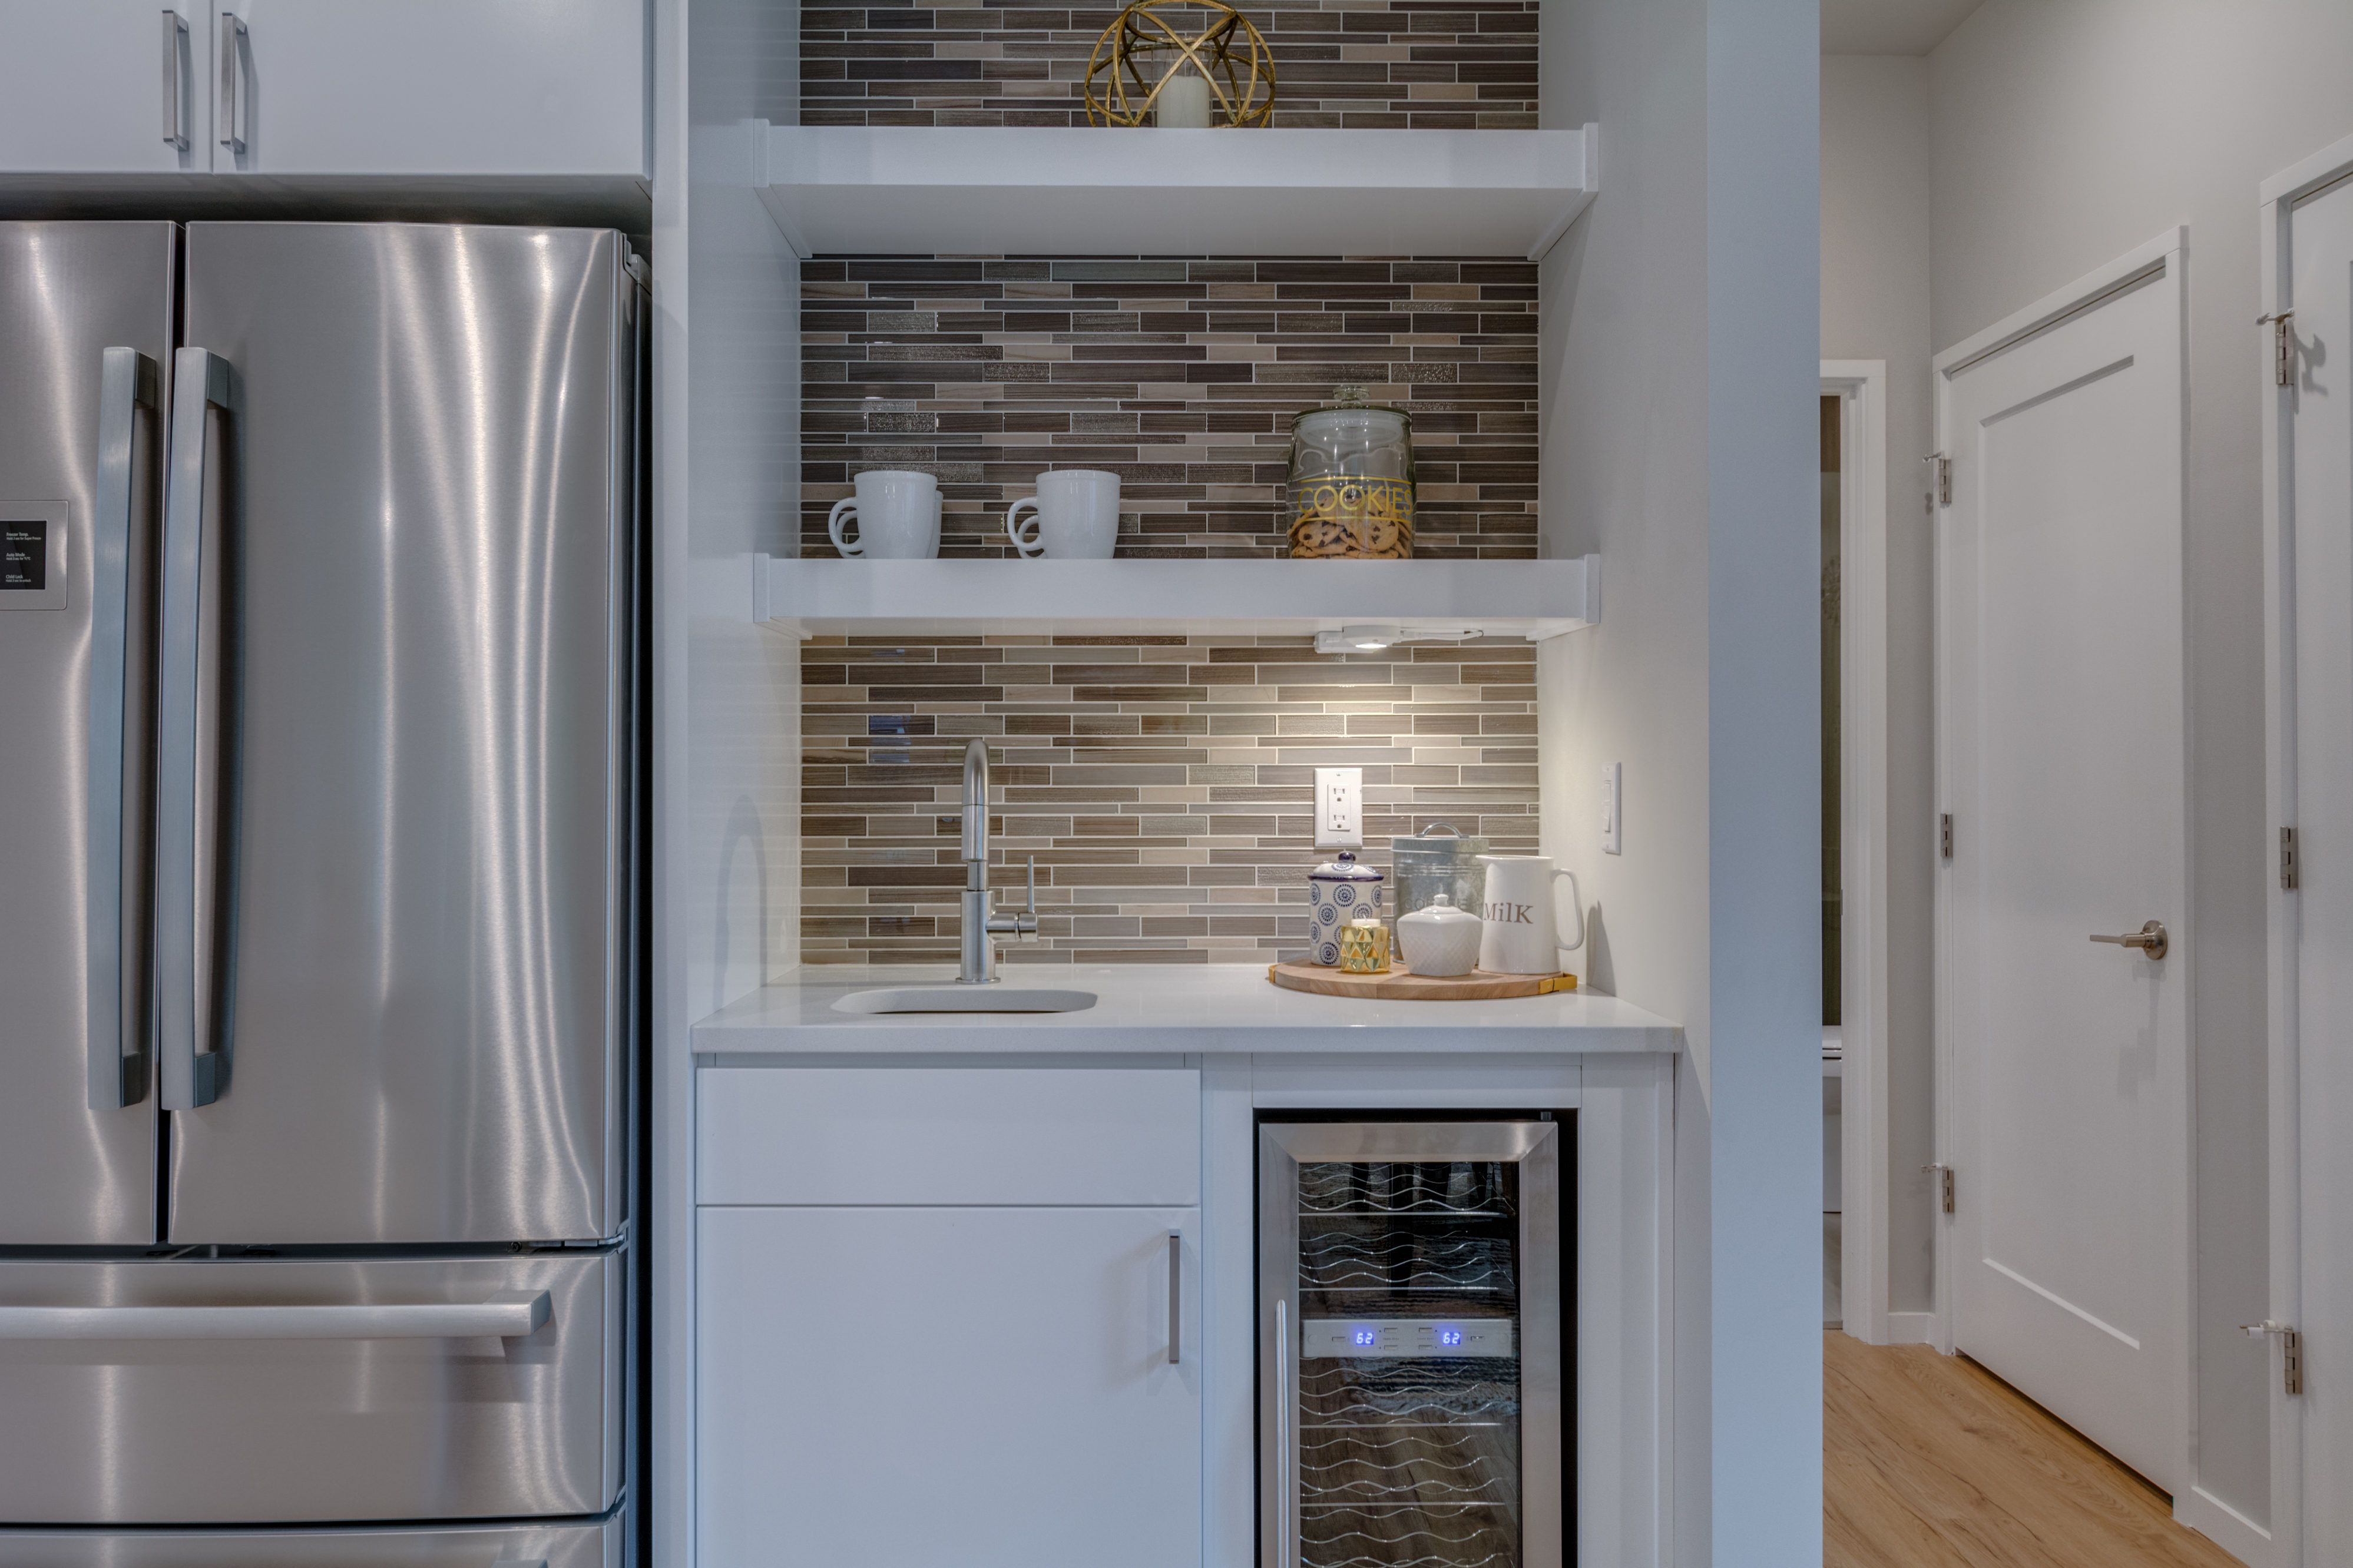 Pin by Urban NW Homes on Urban NW Kitchens French doors